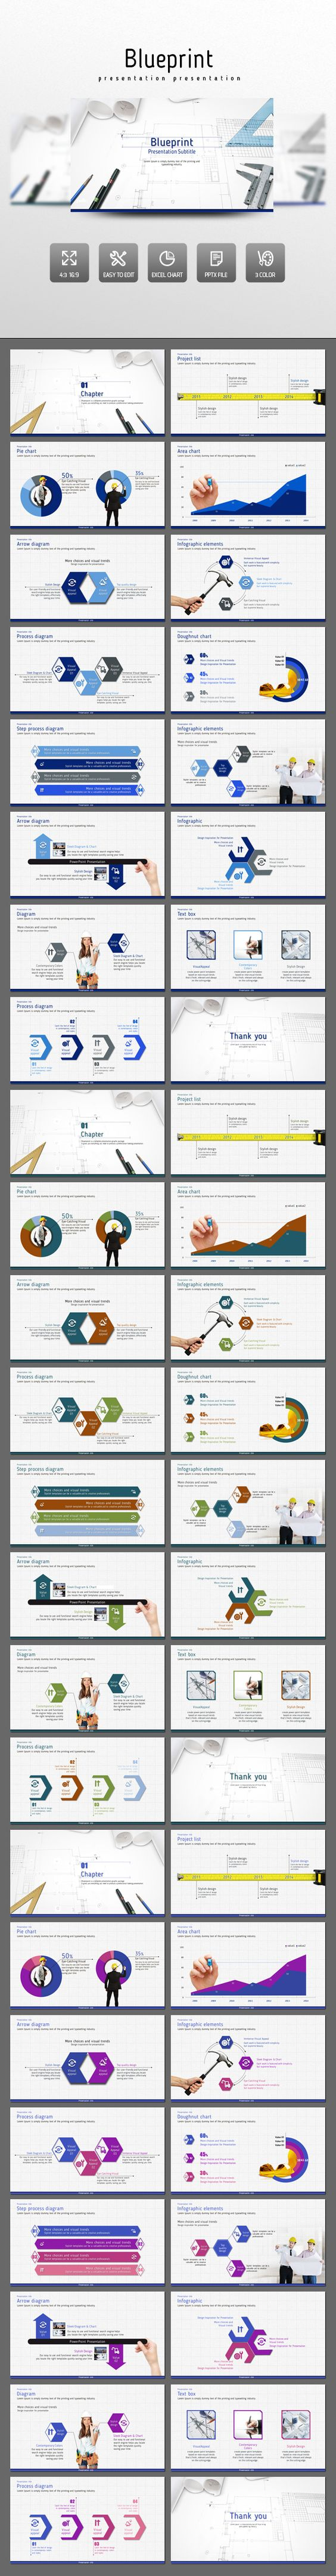 Blueprint powerpoint presentation template design slides buy blueprint by on graphicriver blueprint presentation template contains imagesphotos that people in the architectural or architecture related busi malvernweather Images